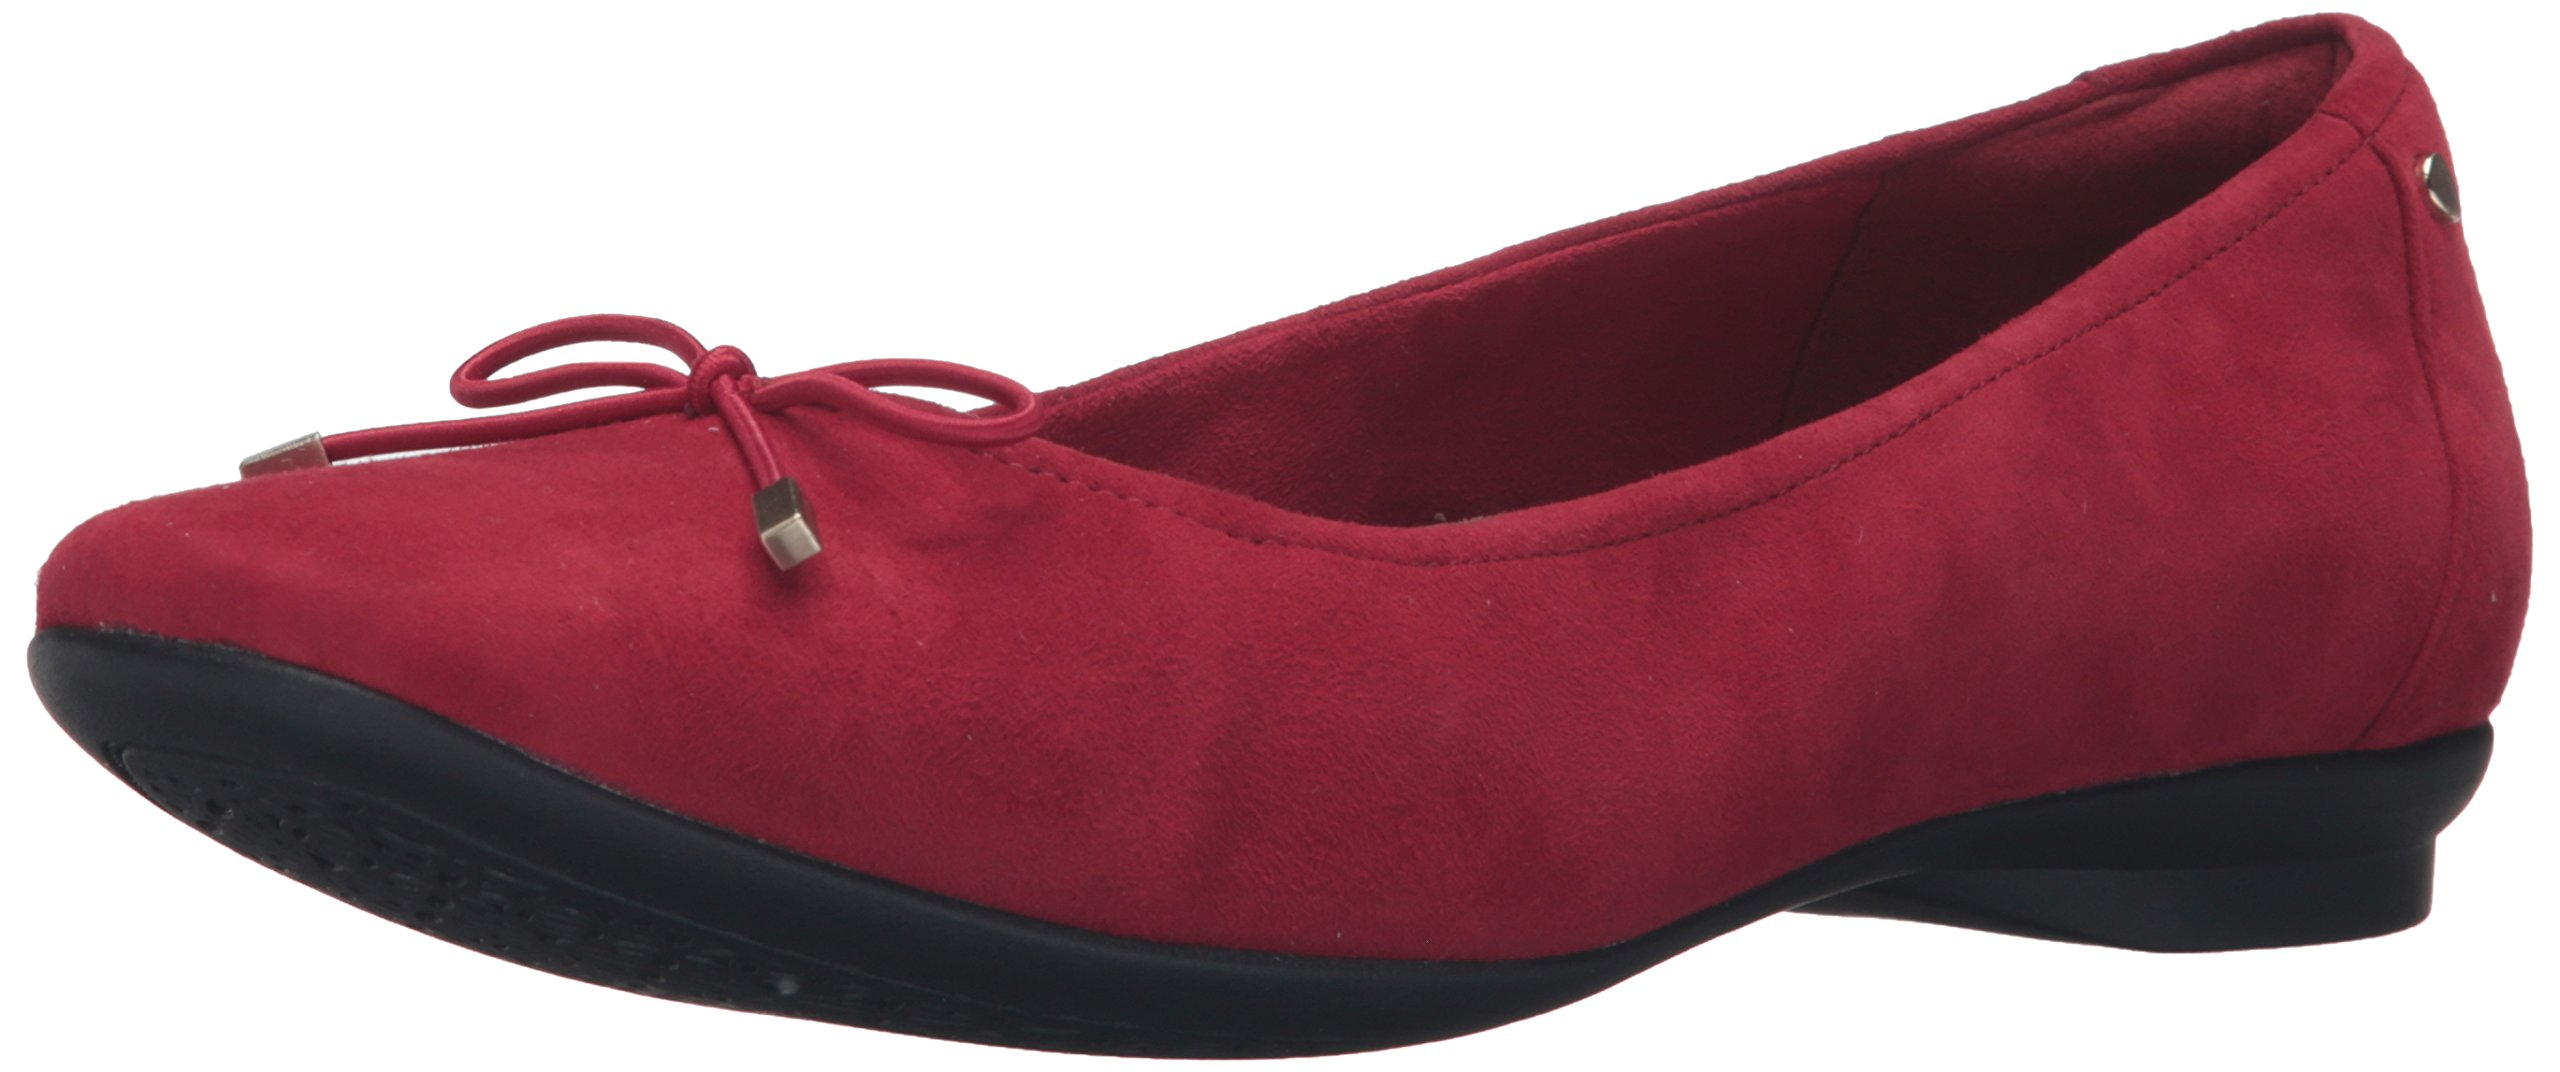 Clarks Women's Candra Light Flat, Red Suede, 10 M US